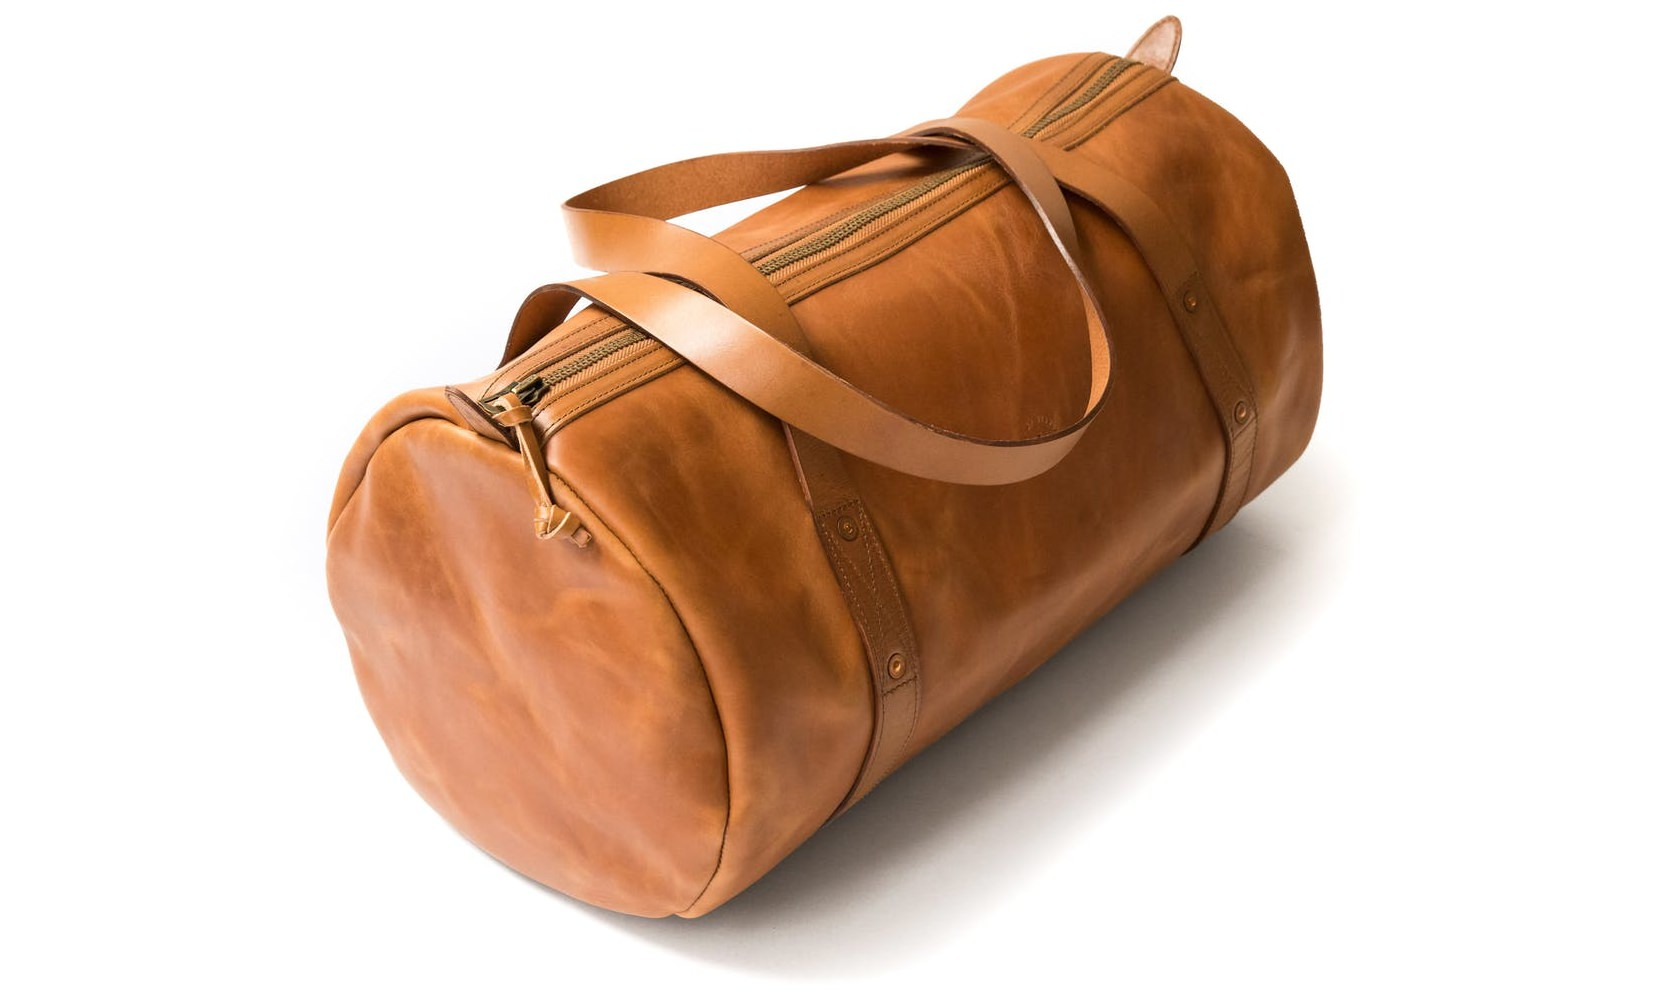 WP Standard Leather Duffel Bag